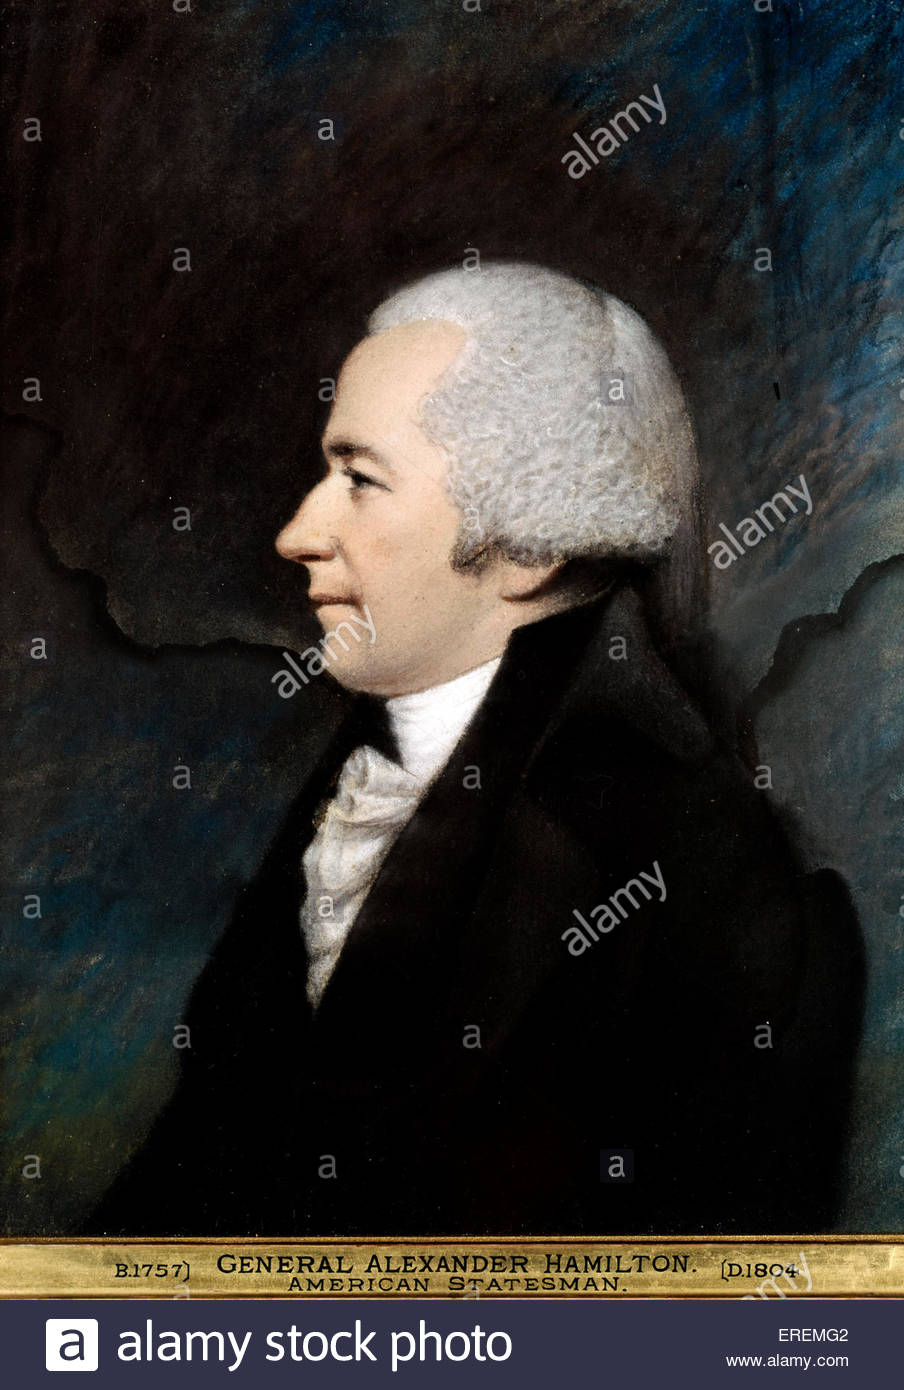 General Alexander Hamilton by James Sharples.  United States Secretary of the Treasury, a Founding Father, economist, - Stock Image